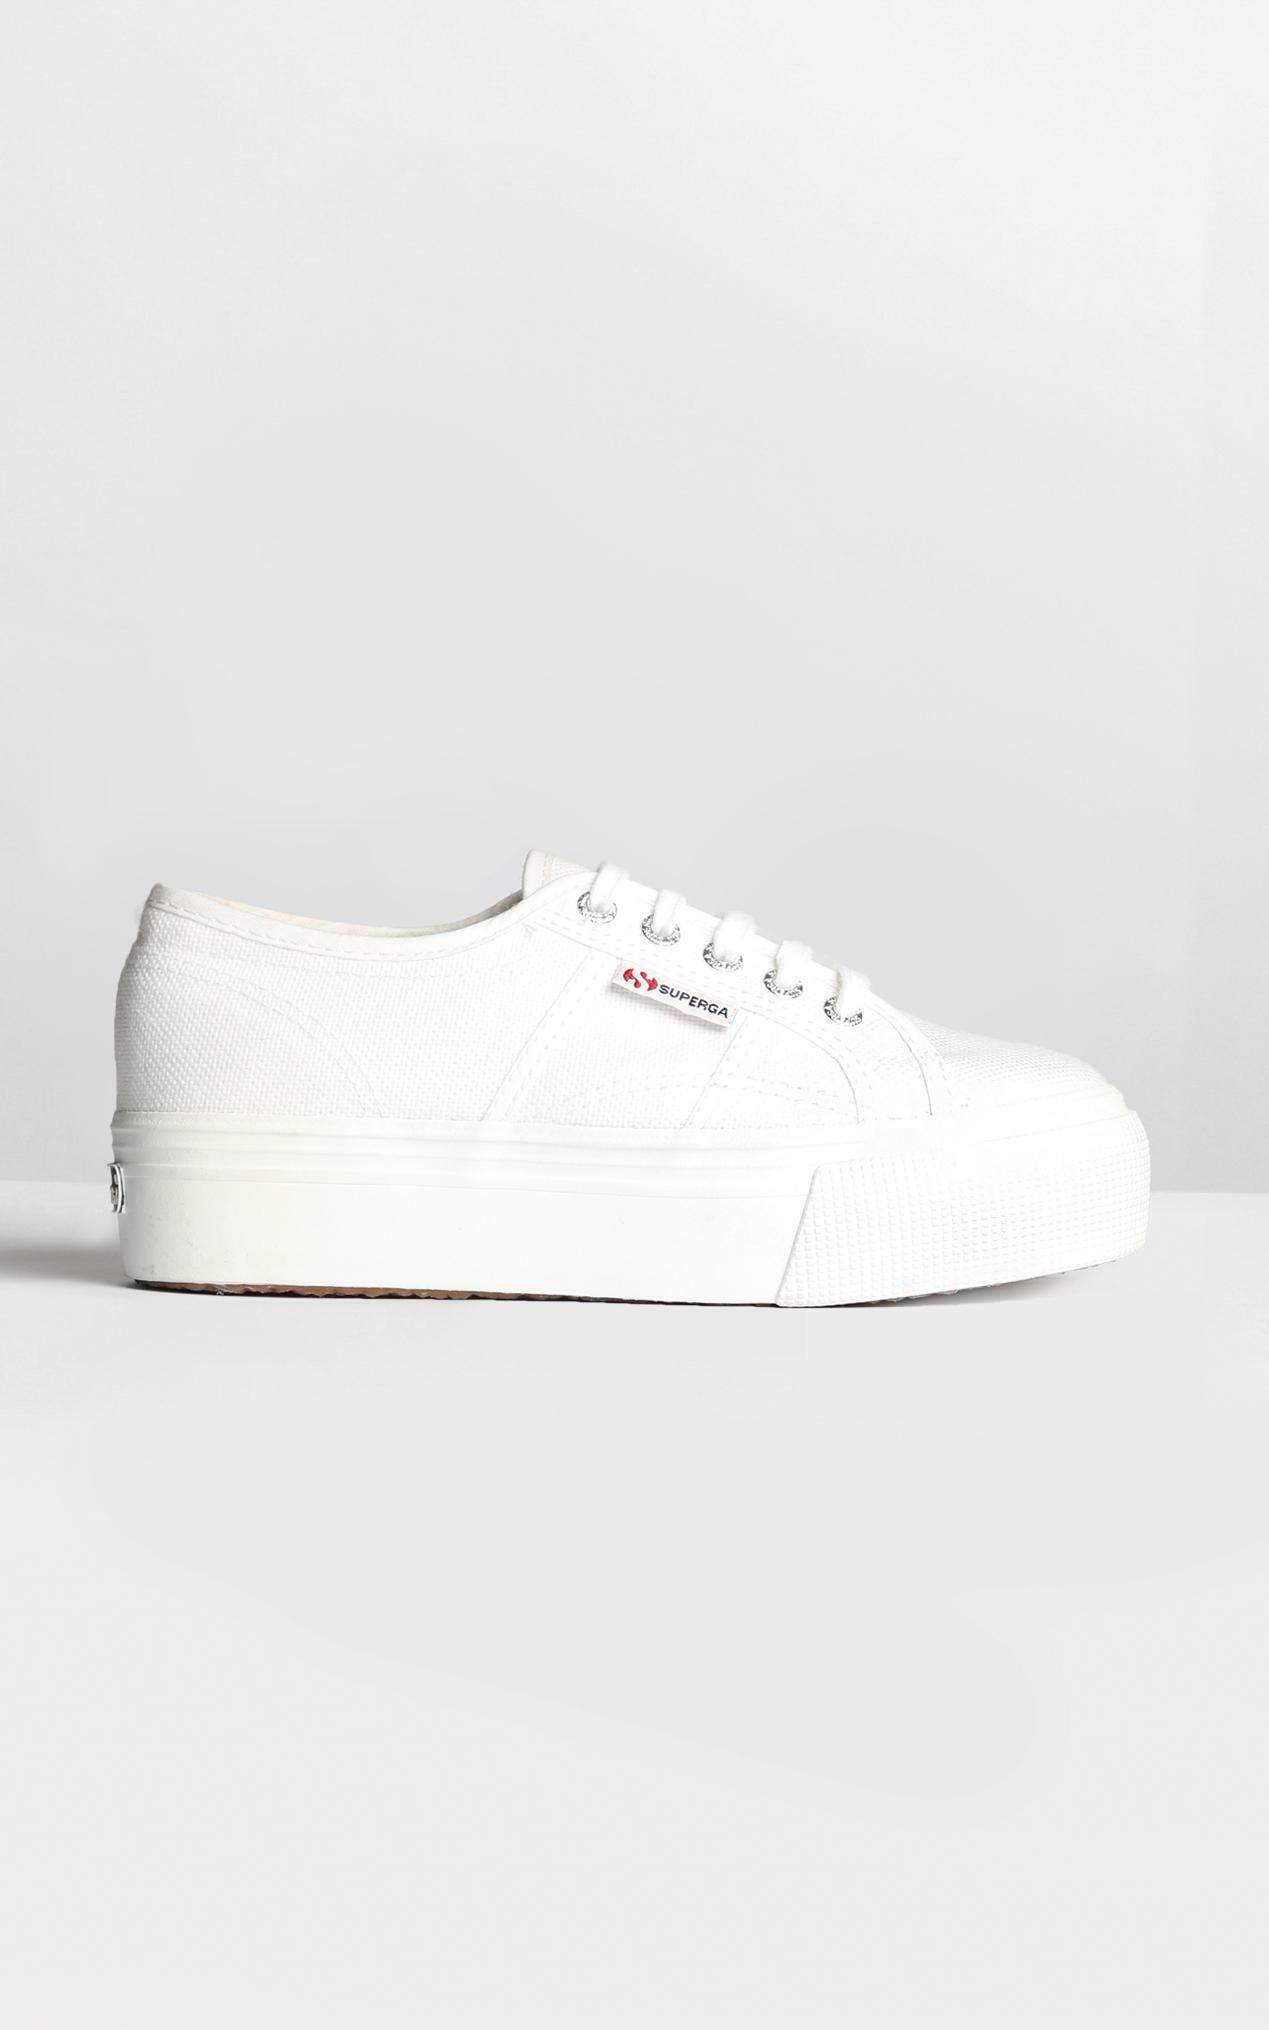 2790 ACOTW Linea Up And Down Platform Sneakers in White Canvas - 09, WHT1, hi-res image number null